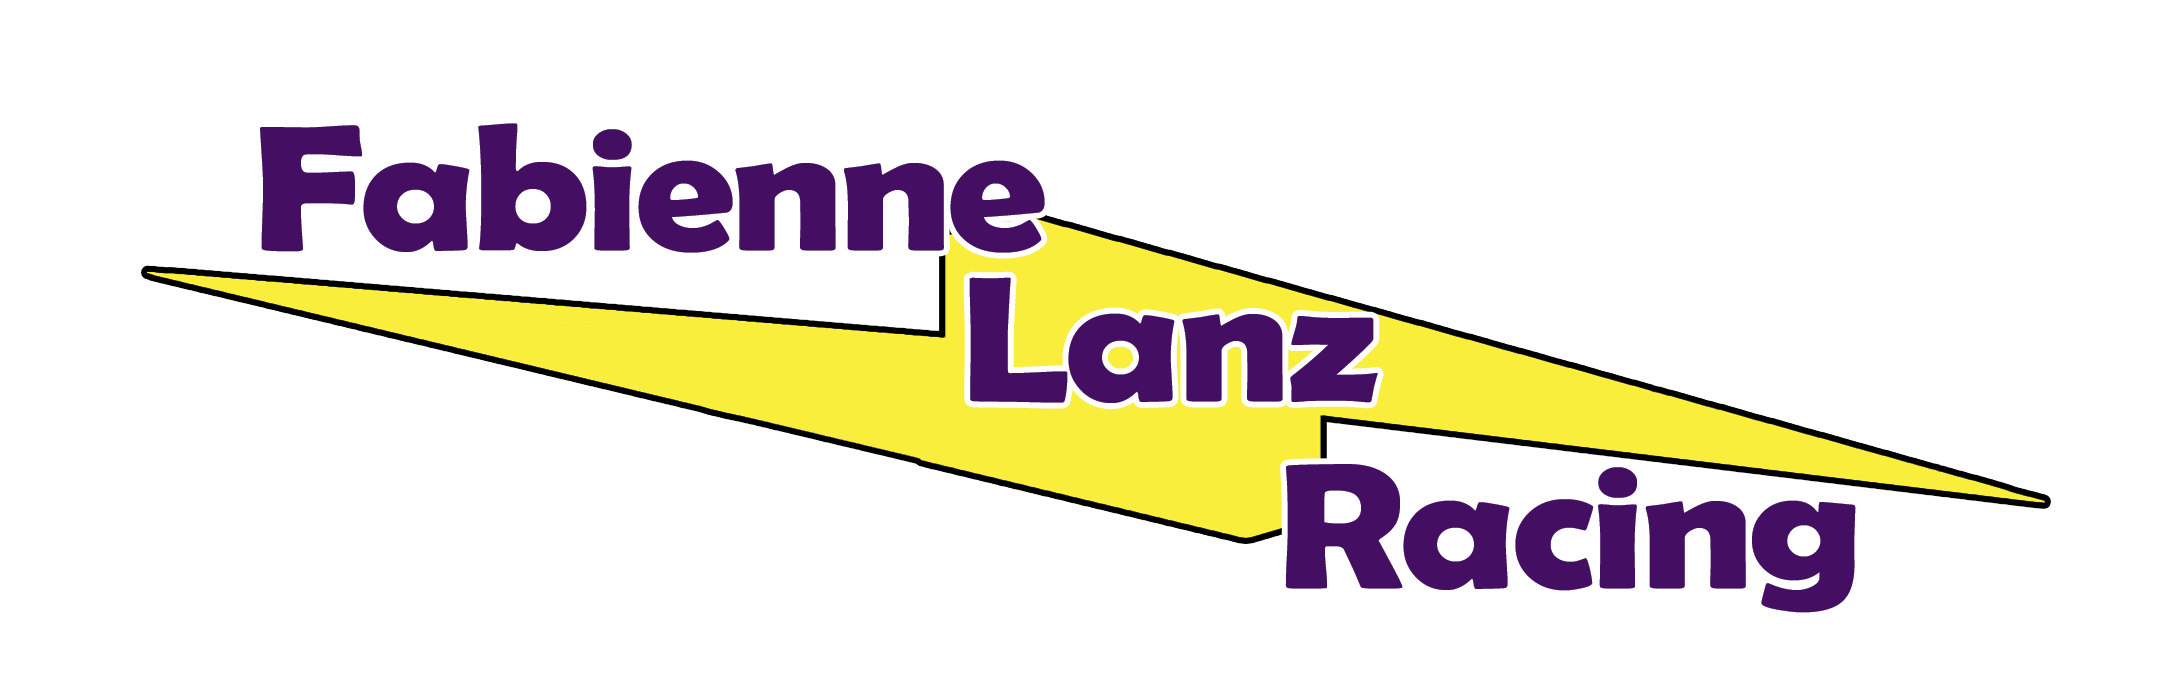 Fabienne Lanz Racing Official